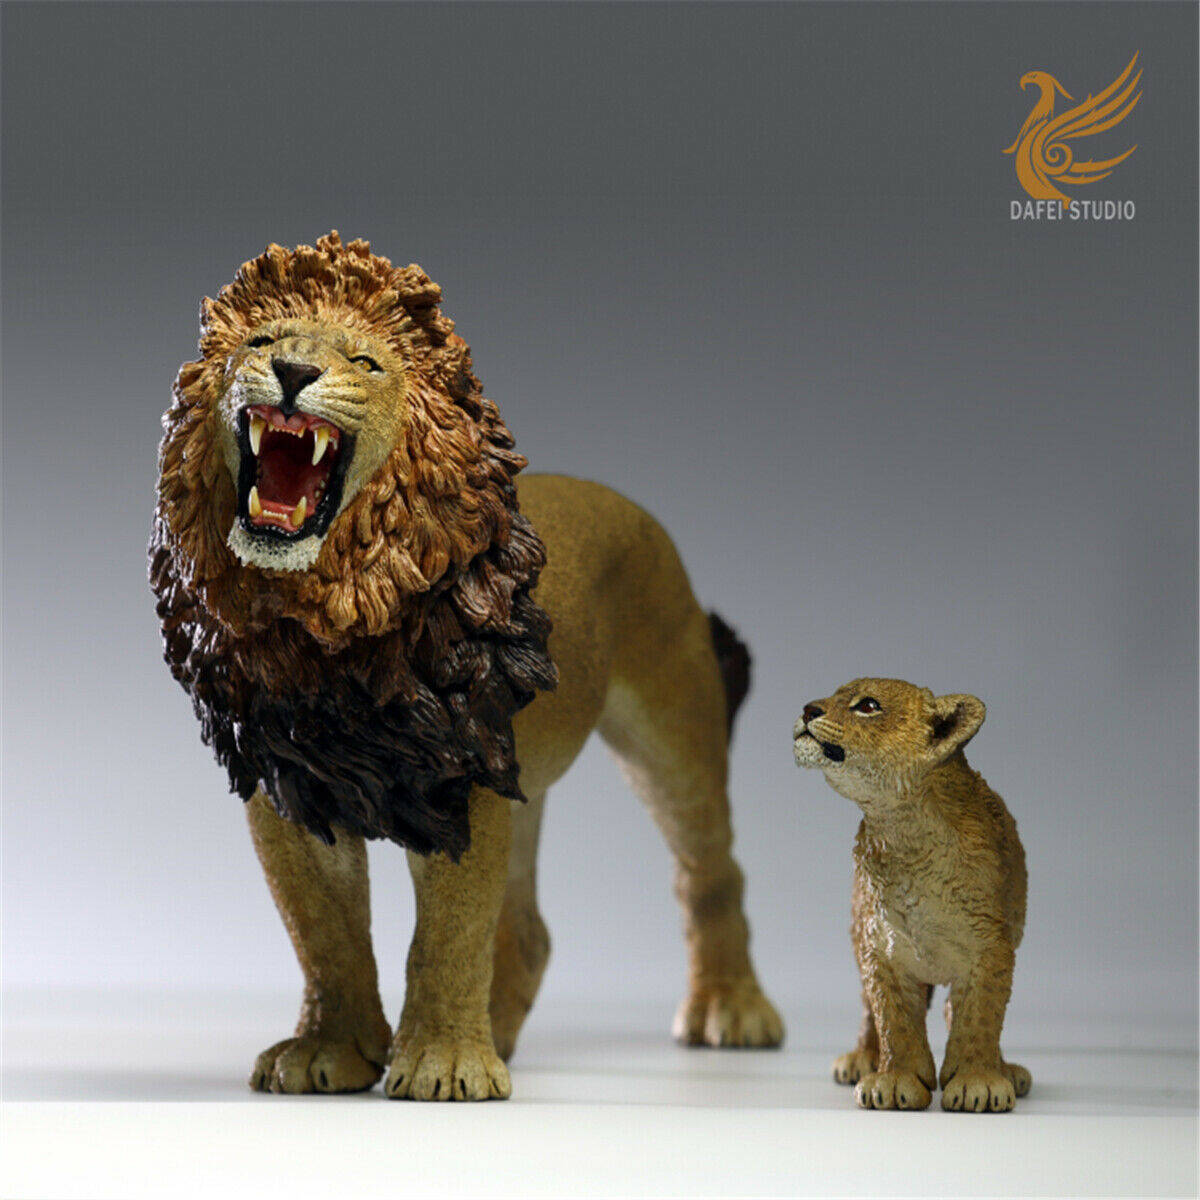 DF 1 12 African Lion King and and and Son Model Panthera leo massaicus Animal Toys Gift 3bf